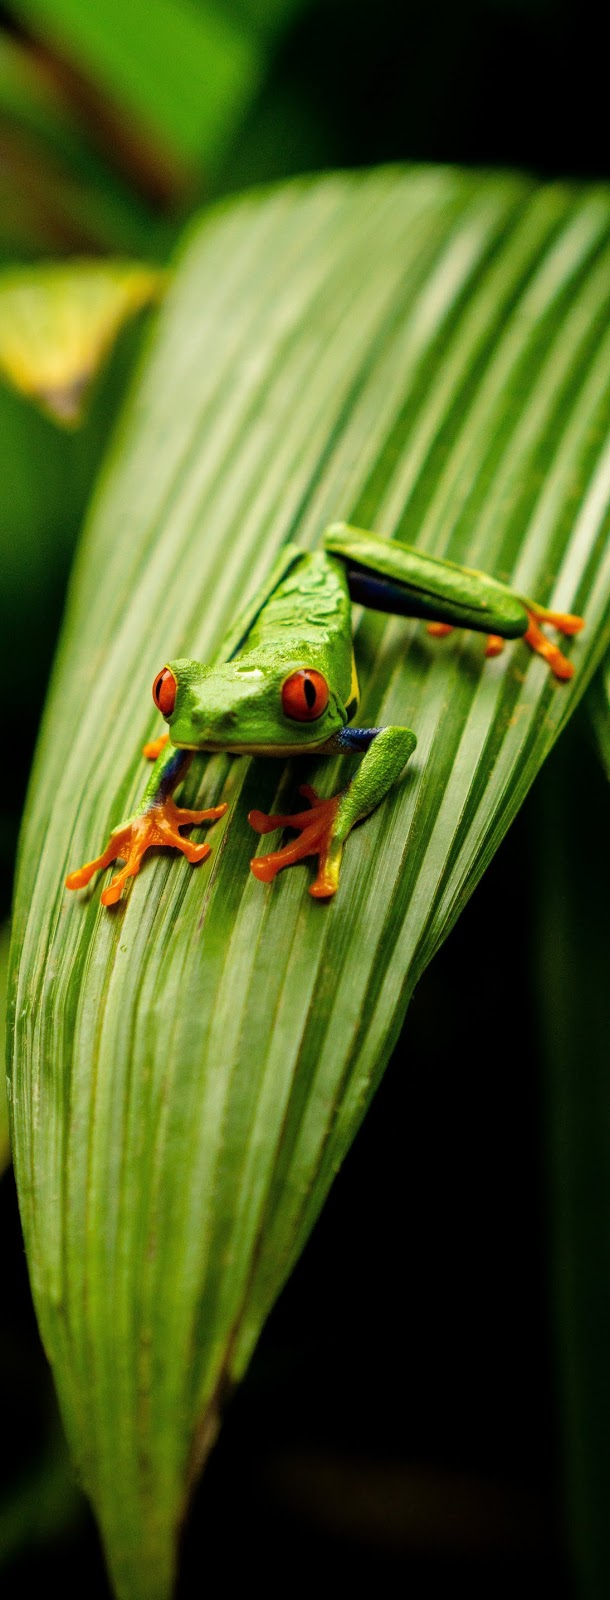 A tree frog on leaf.